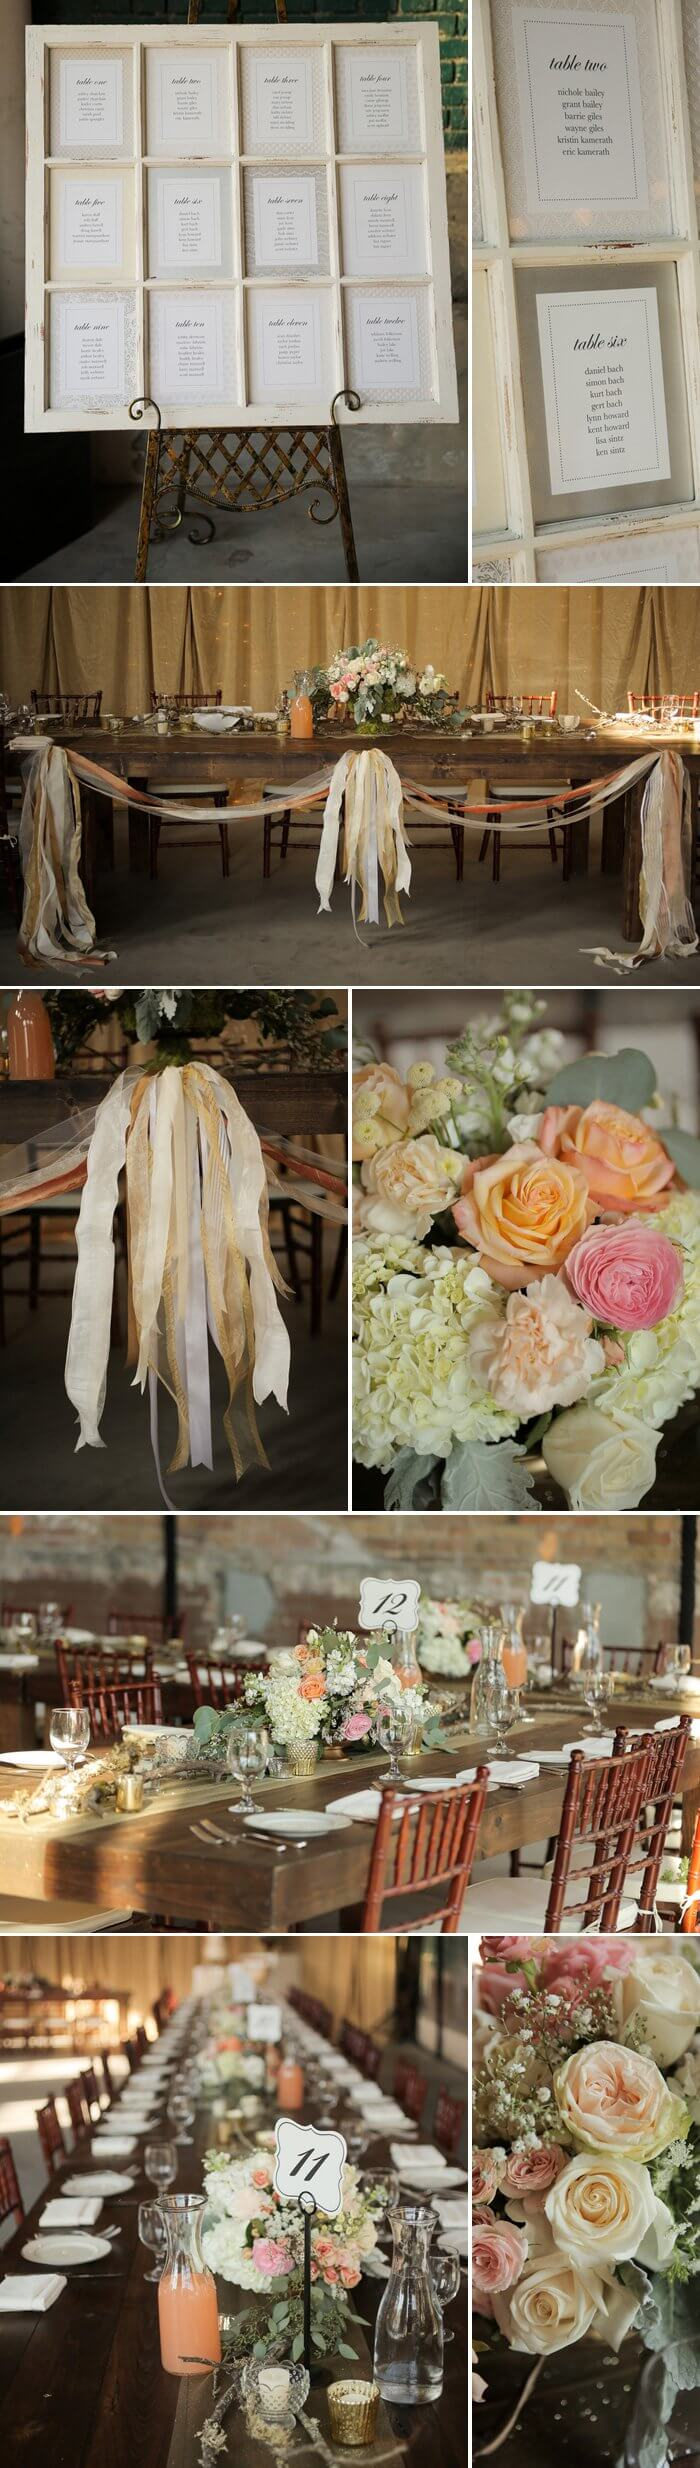 1632531482 582 The best tips ideas inspiration for country style - The best tips, ideas & inspiration for country style